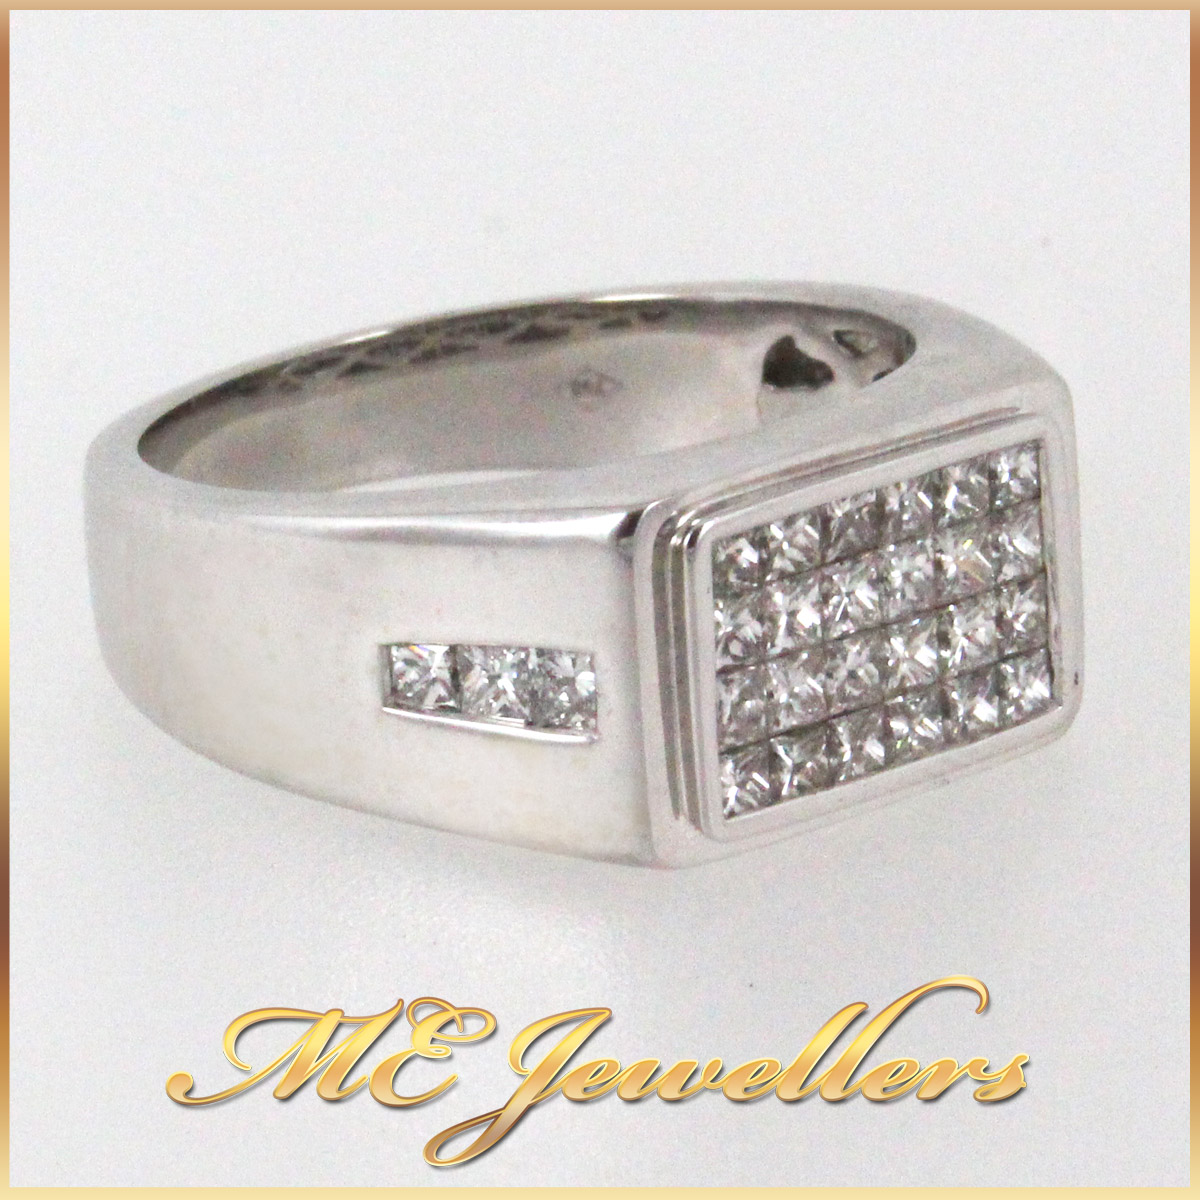 345 Mens Dress Ring With Illision Set Diamond in 18K White Gold side 2